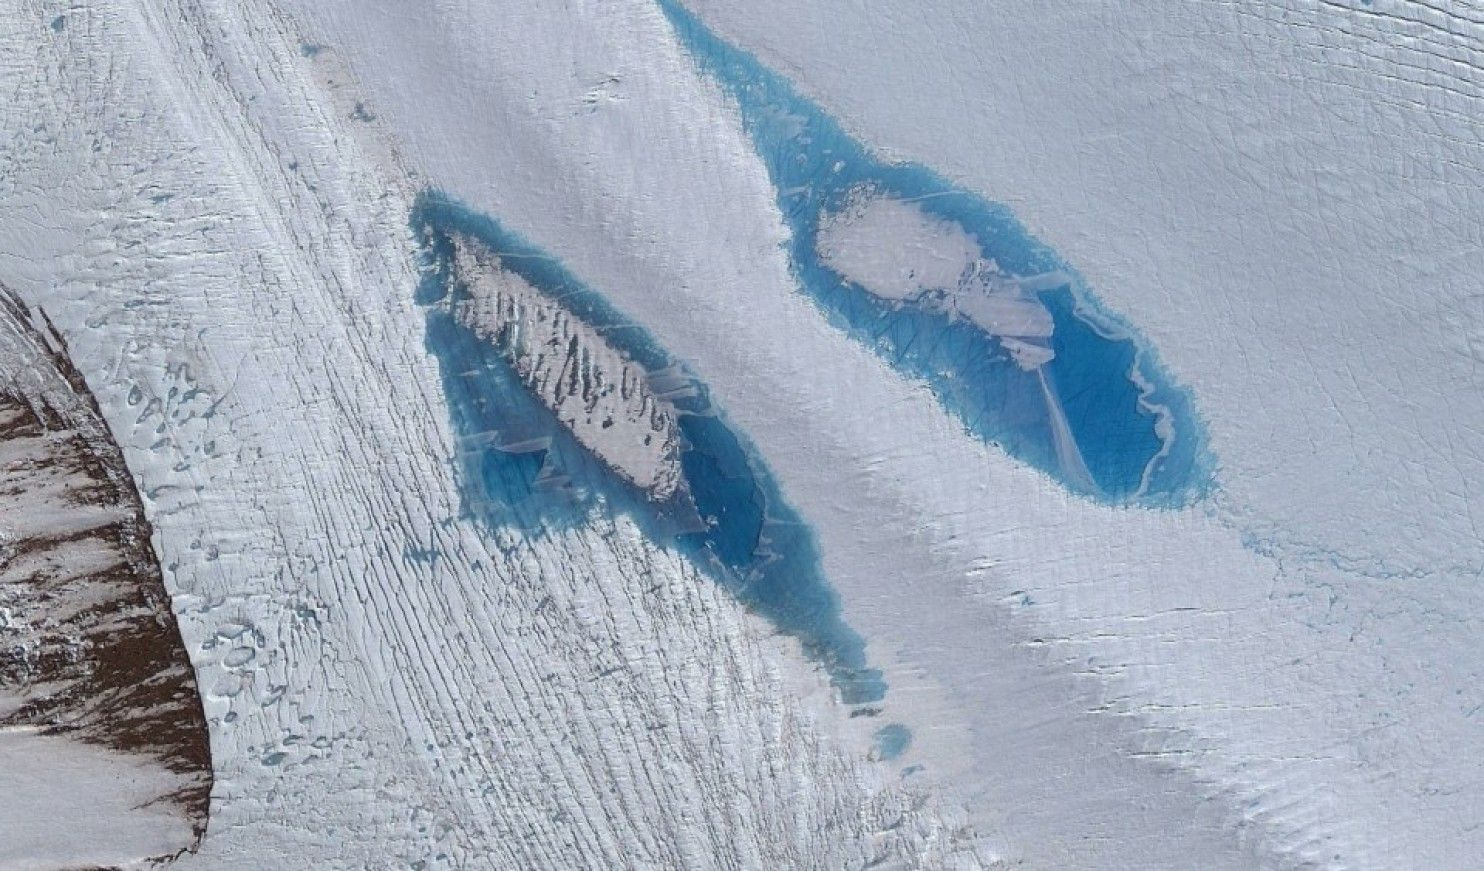 Draining lakes in Antarctica sounds all too reminiscent of what's driving ice…